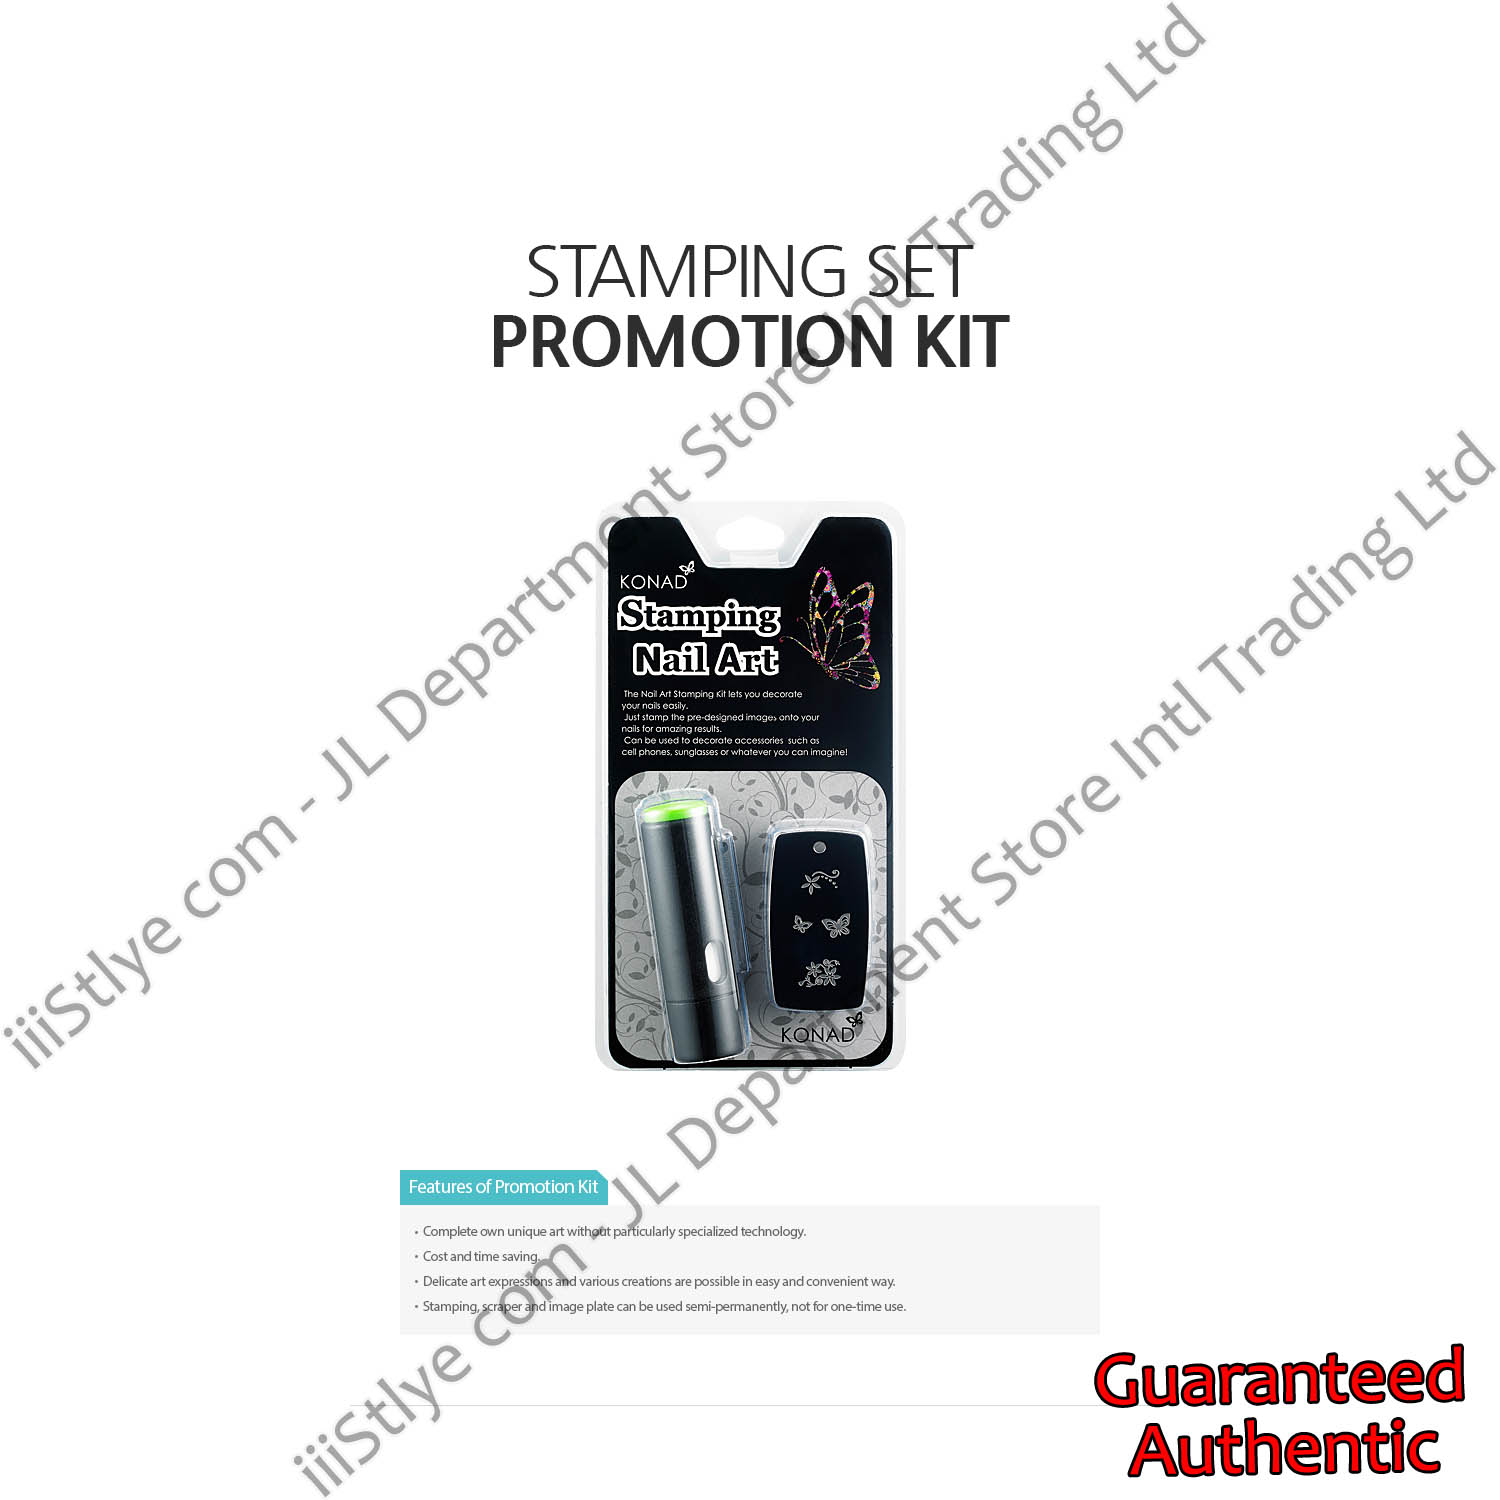 stamping set promotion kit